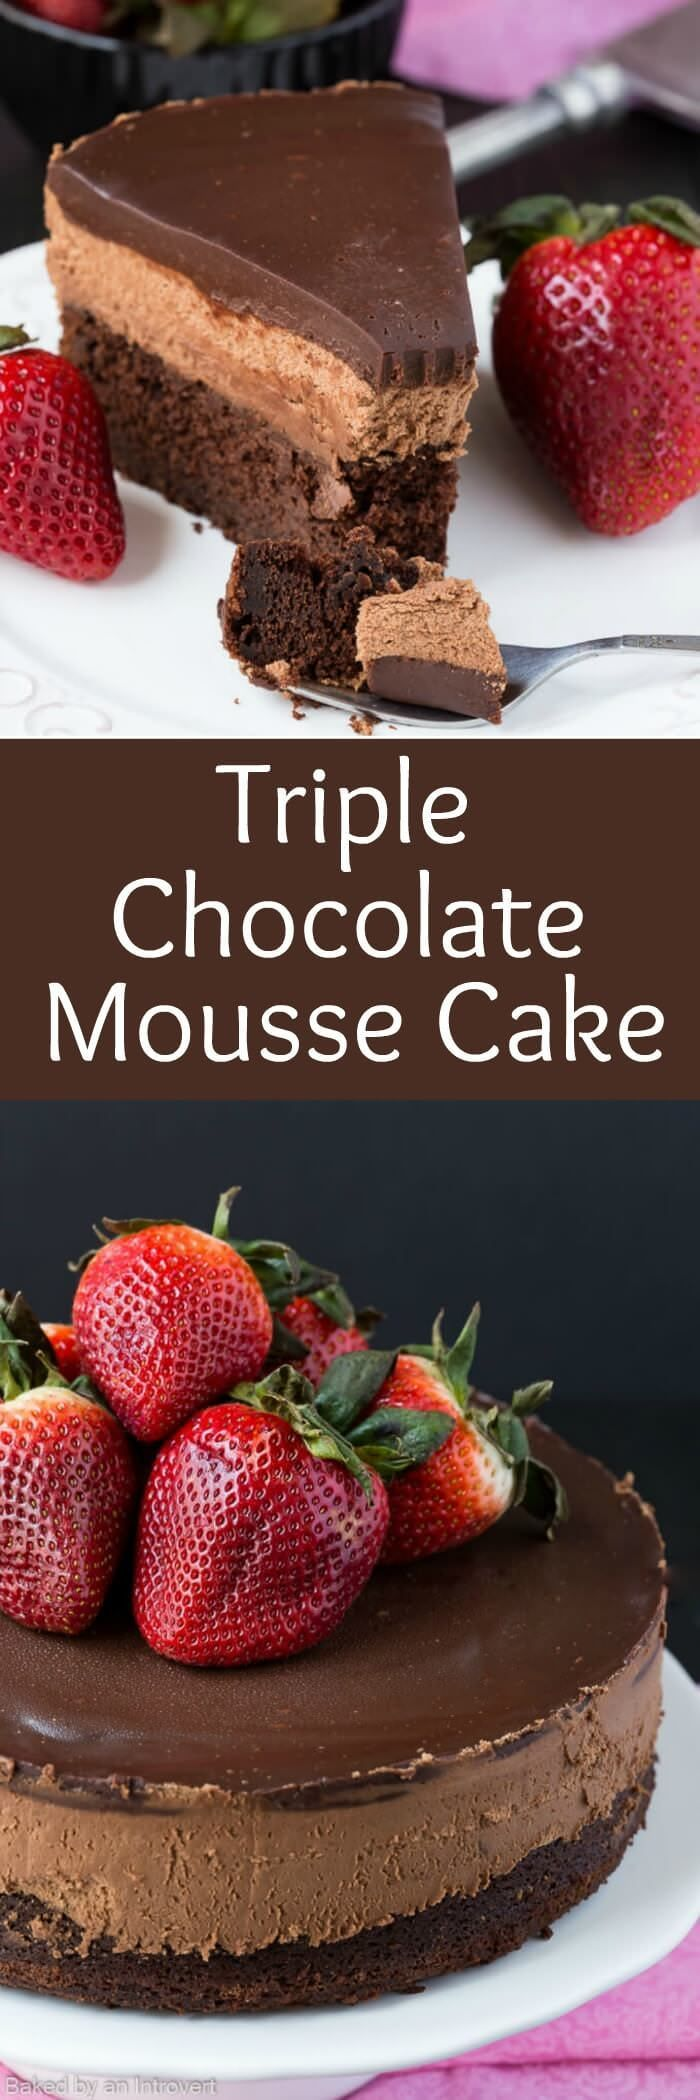 Triple chocolate Mousse Cake is the perfect light dessert recipe. It's made with a chocolate cake base, cool creamy mousse filling, and topped with rich dark chocolate ganache. Serve the cake with fresh berries for an extra special treat that's perfect for your special occasion.